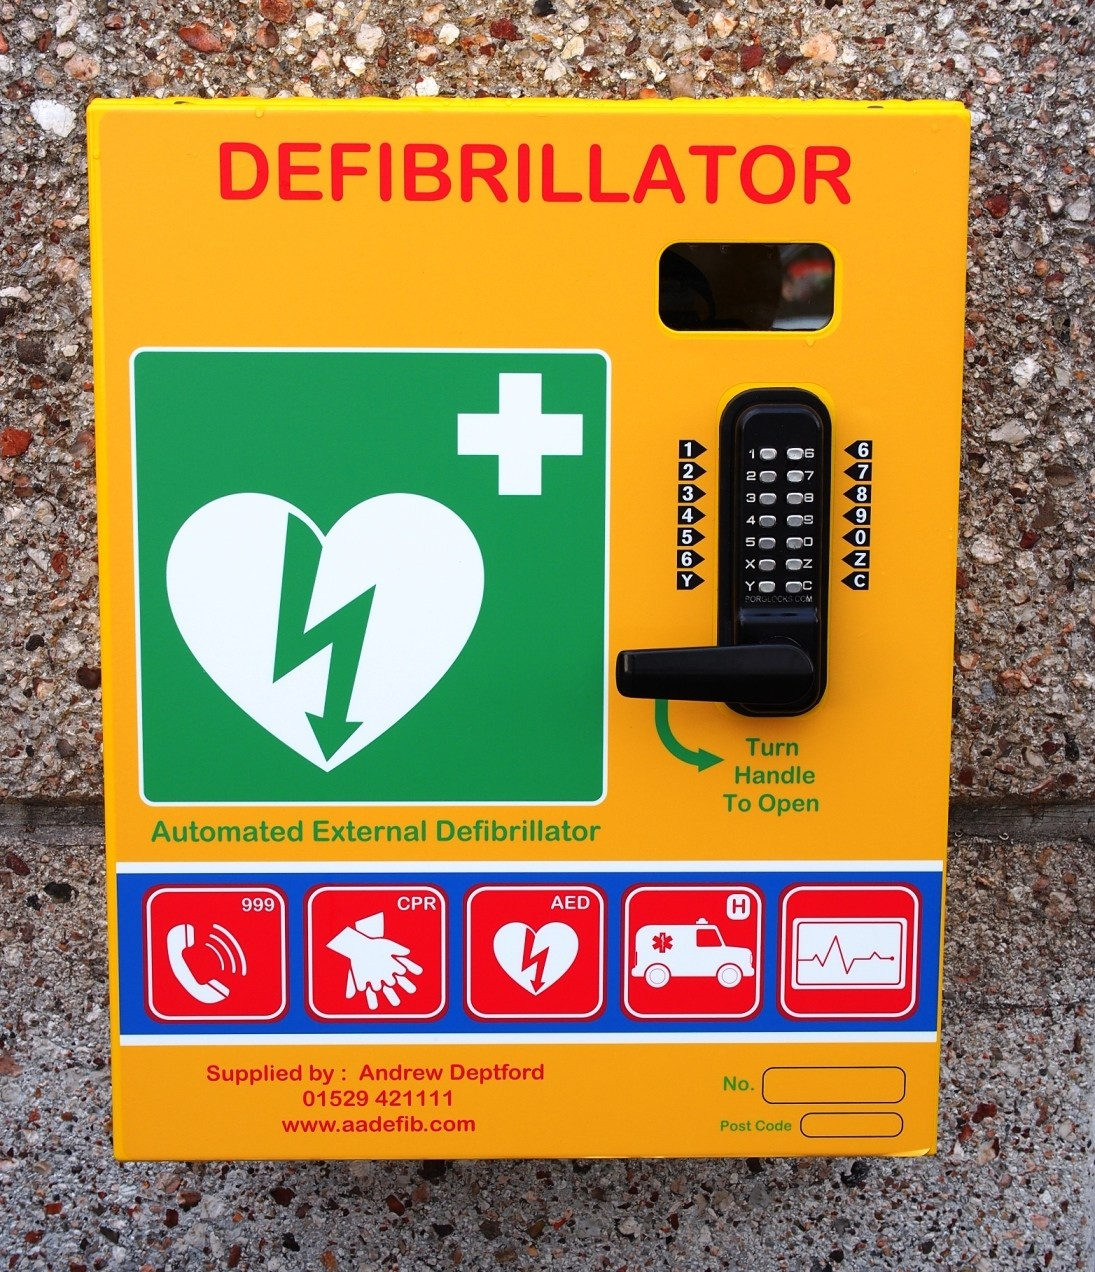 Publicly Available Defibrillators (PAD's)